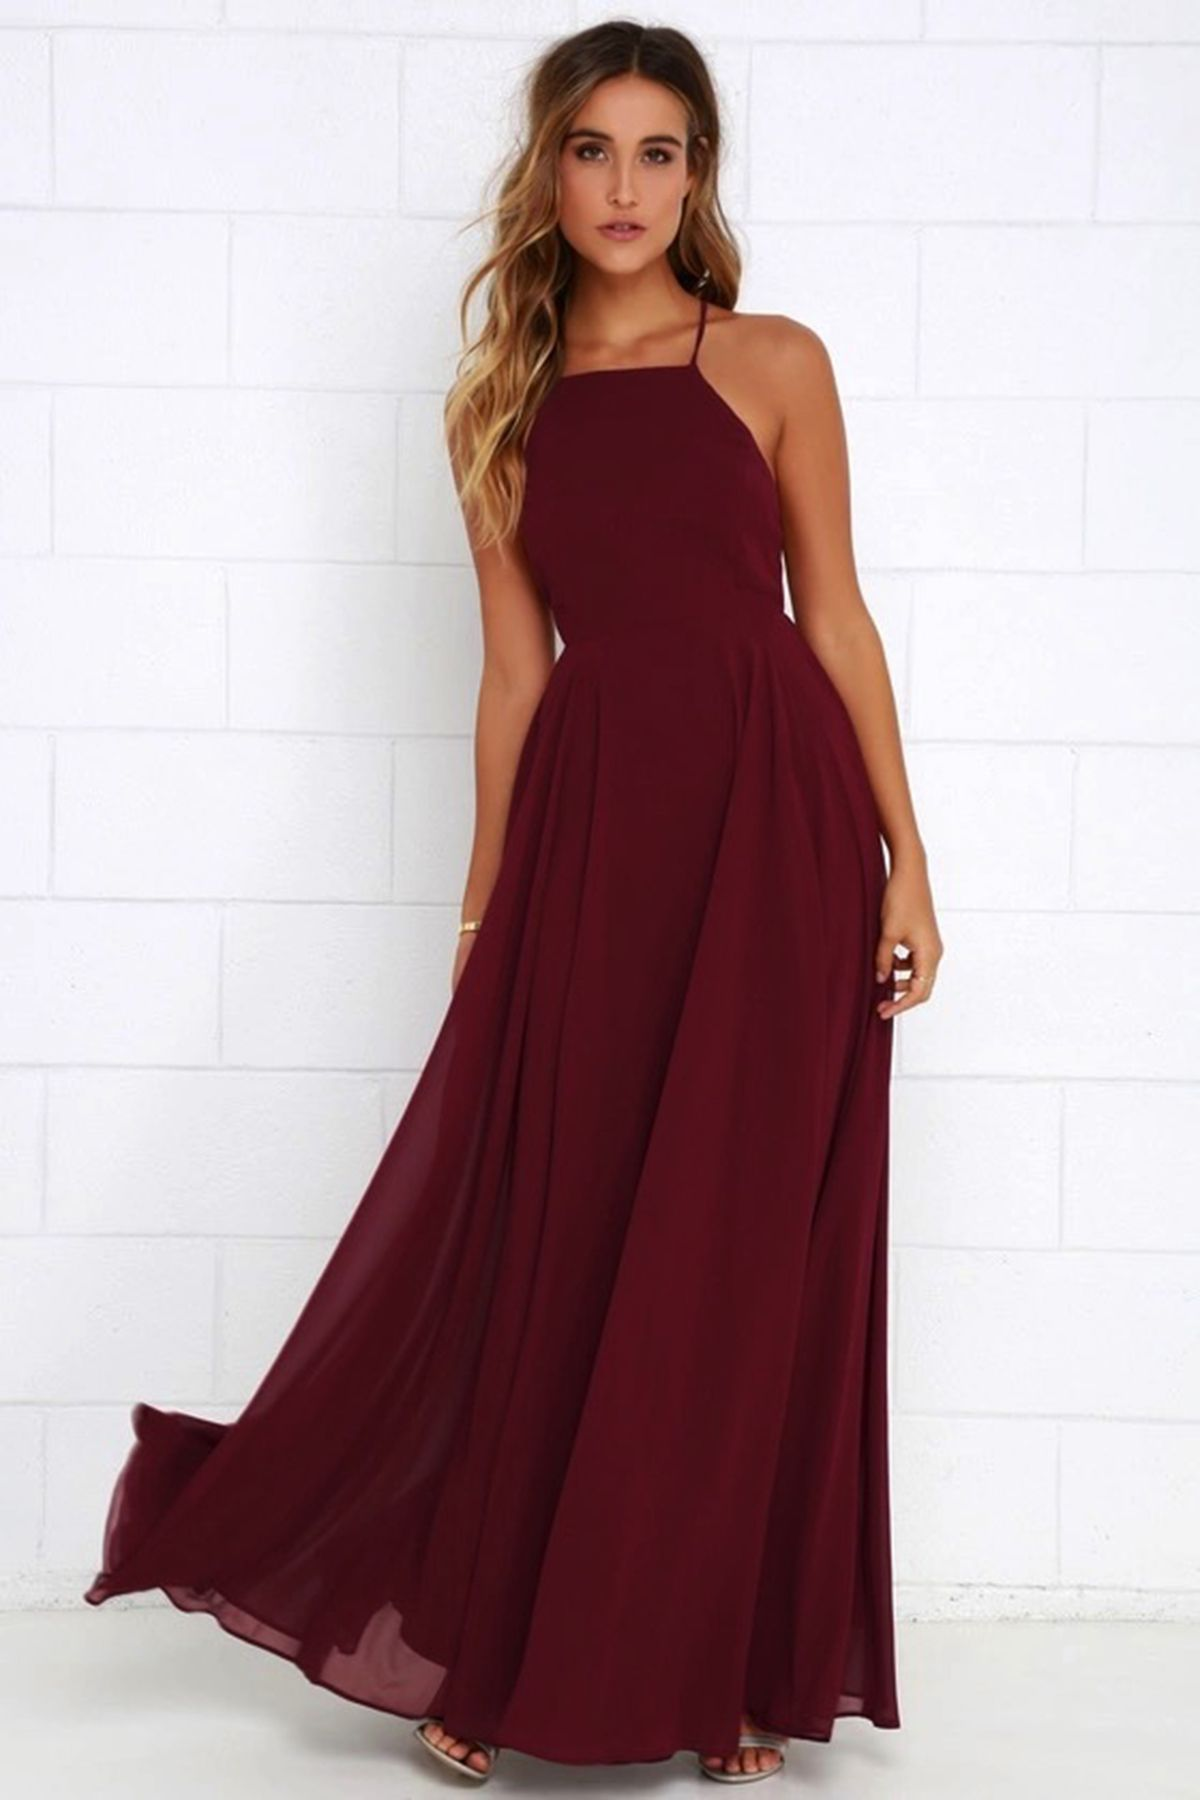 Simple Burgundy Chiffon Strapless Long Open Back Prom Dress Evening Dress In 2020 Red Dress Maxi Maxi Dress Wine Colored Dresses